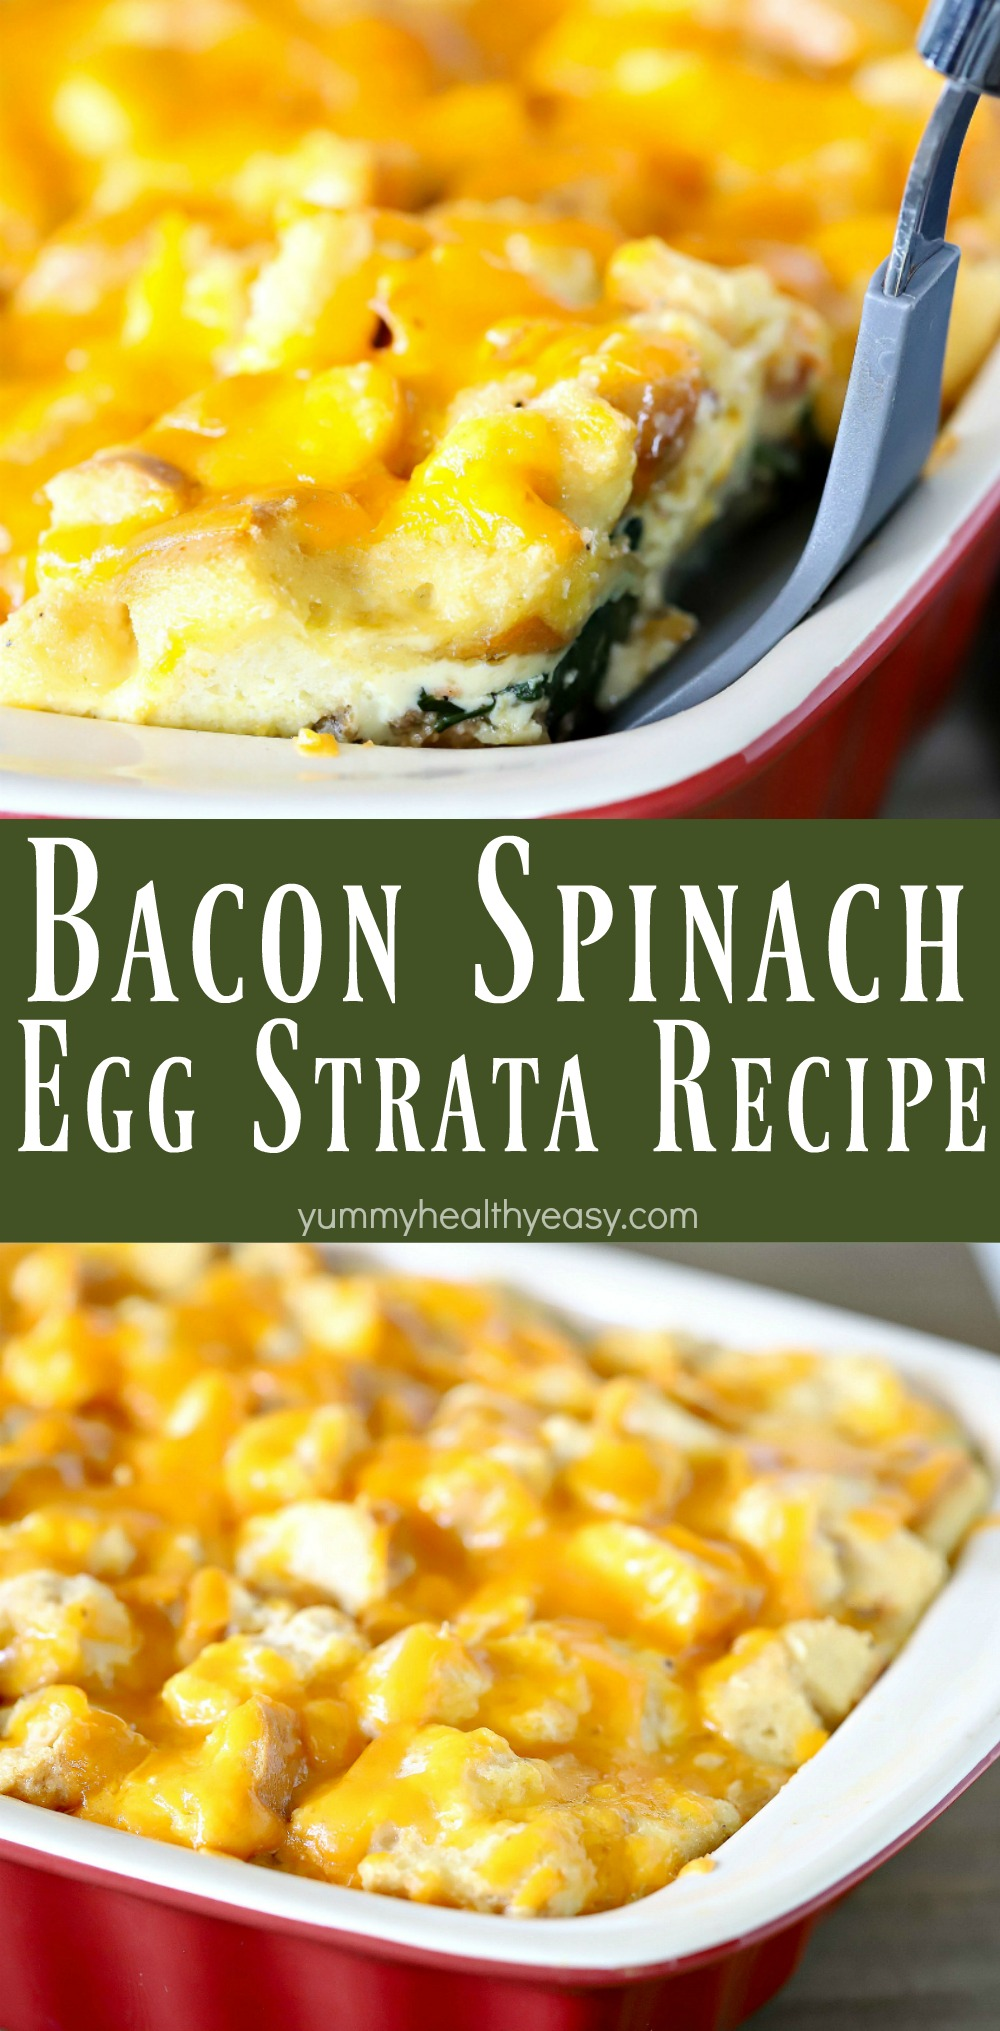 This egg strata recipe has a delicious egg & bread layer on the bottom and a layer of bacon, sausage, spinach & onion filling in the middle with another layer of bread and cheese on the top. This gorgeous casserole will impress your guests - whether it's for brunch, lunch or breakfast for dinner! #ad #sponsored #breakfast #recipe #strata #eggs #bacon #sausage #breakfastrecipe #yummy #delicious via @jennikolaus